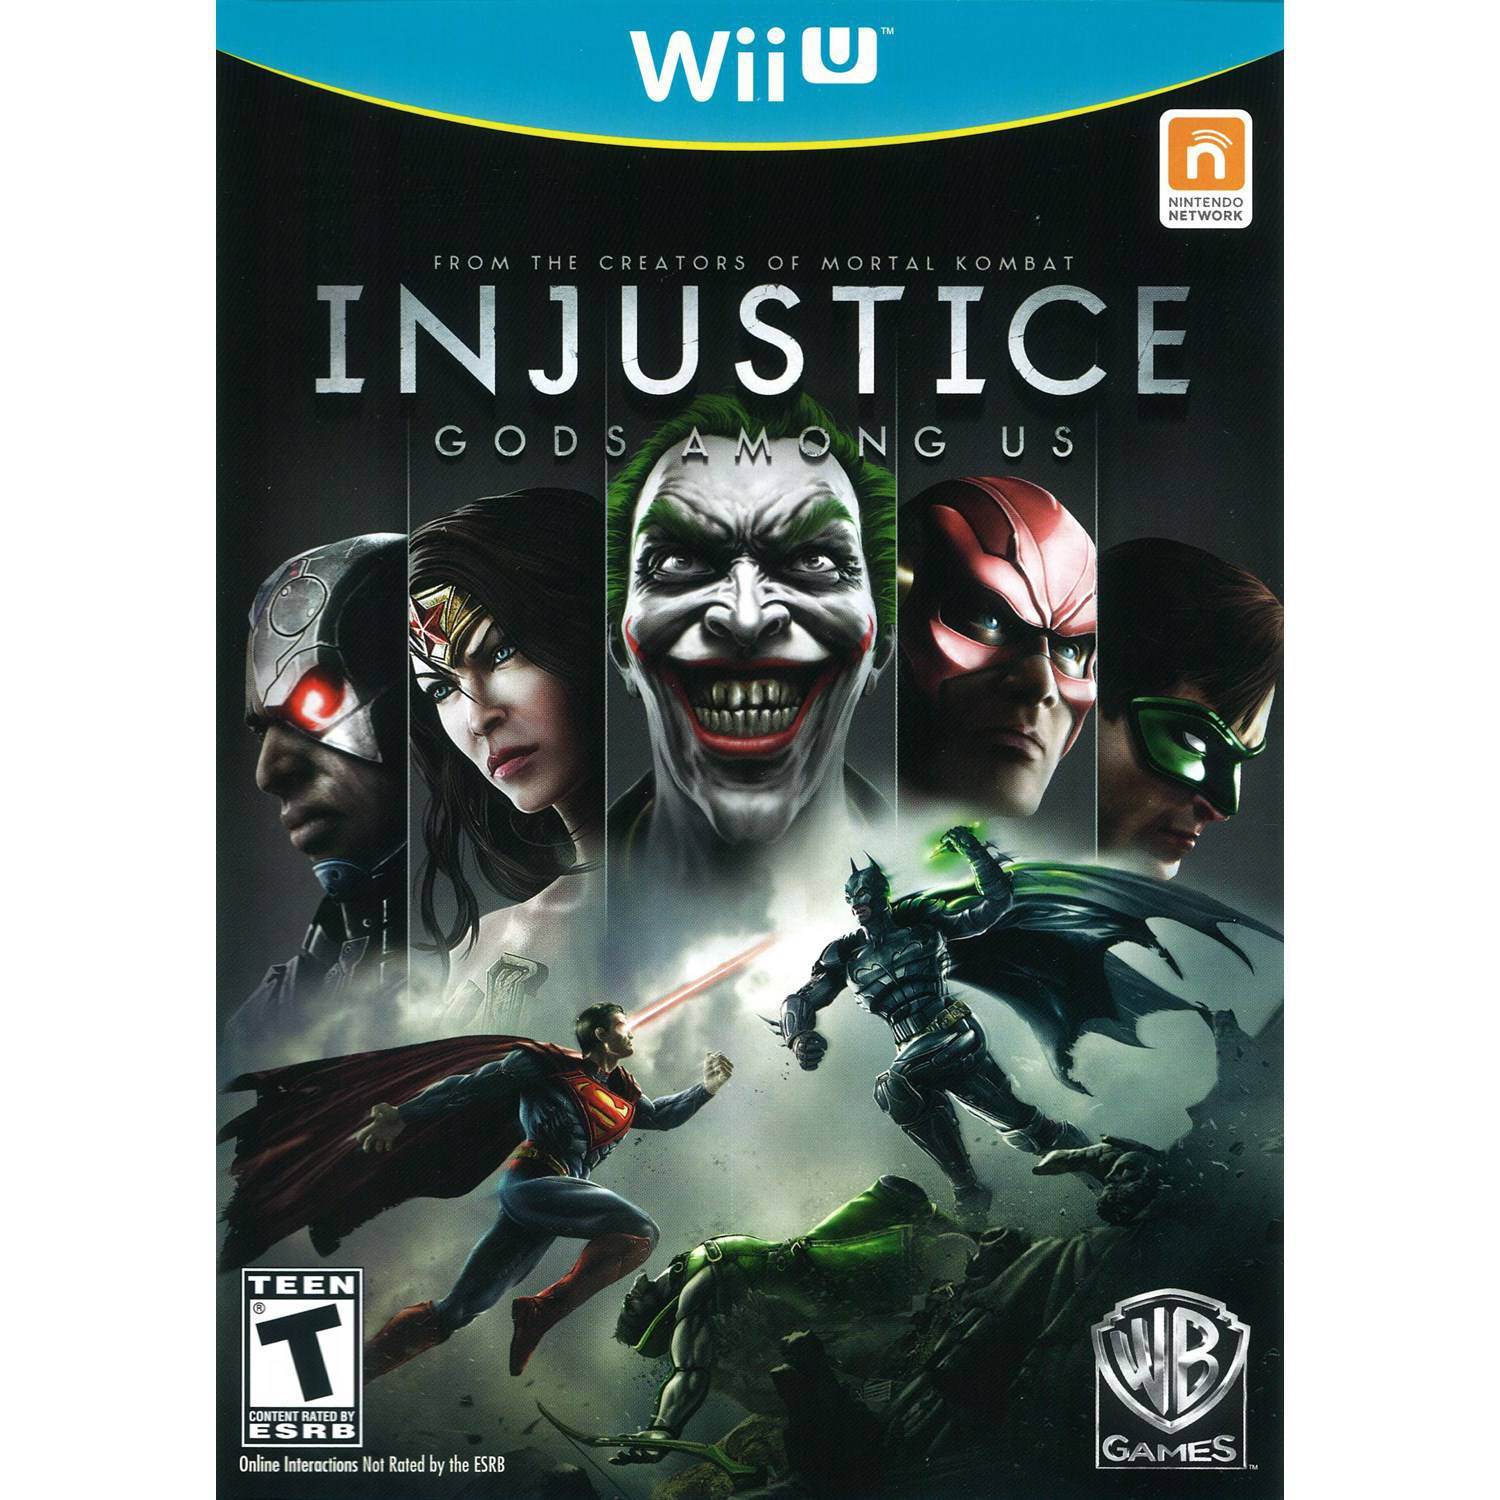 Injustice: Gods Among Us (Wii U)